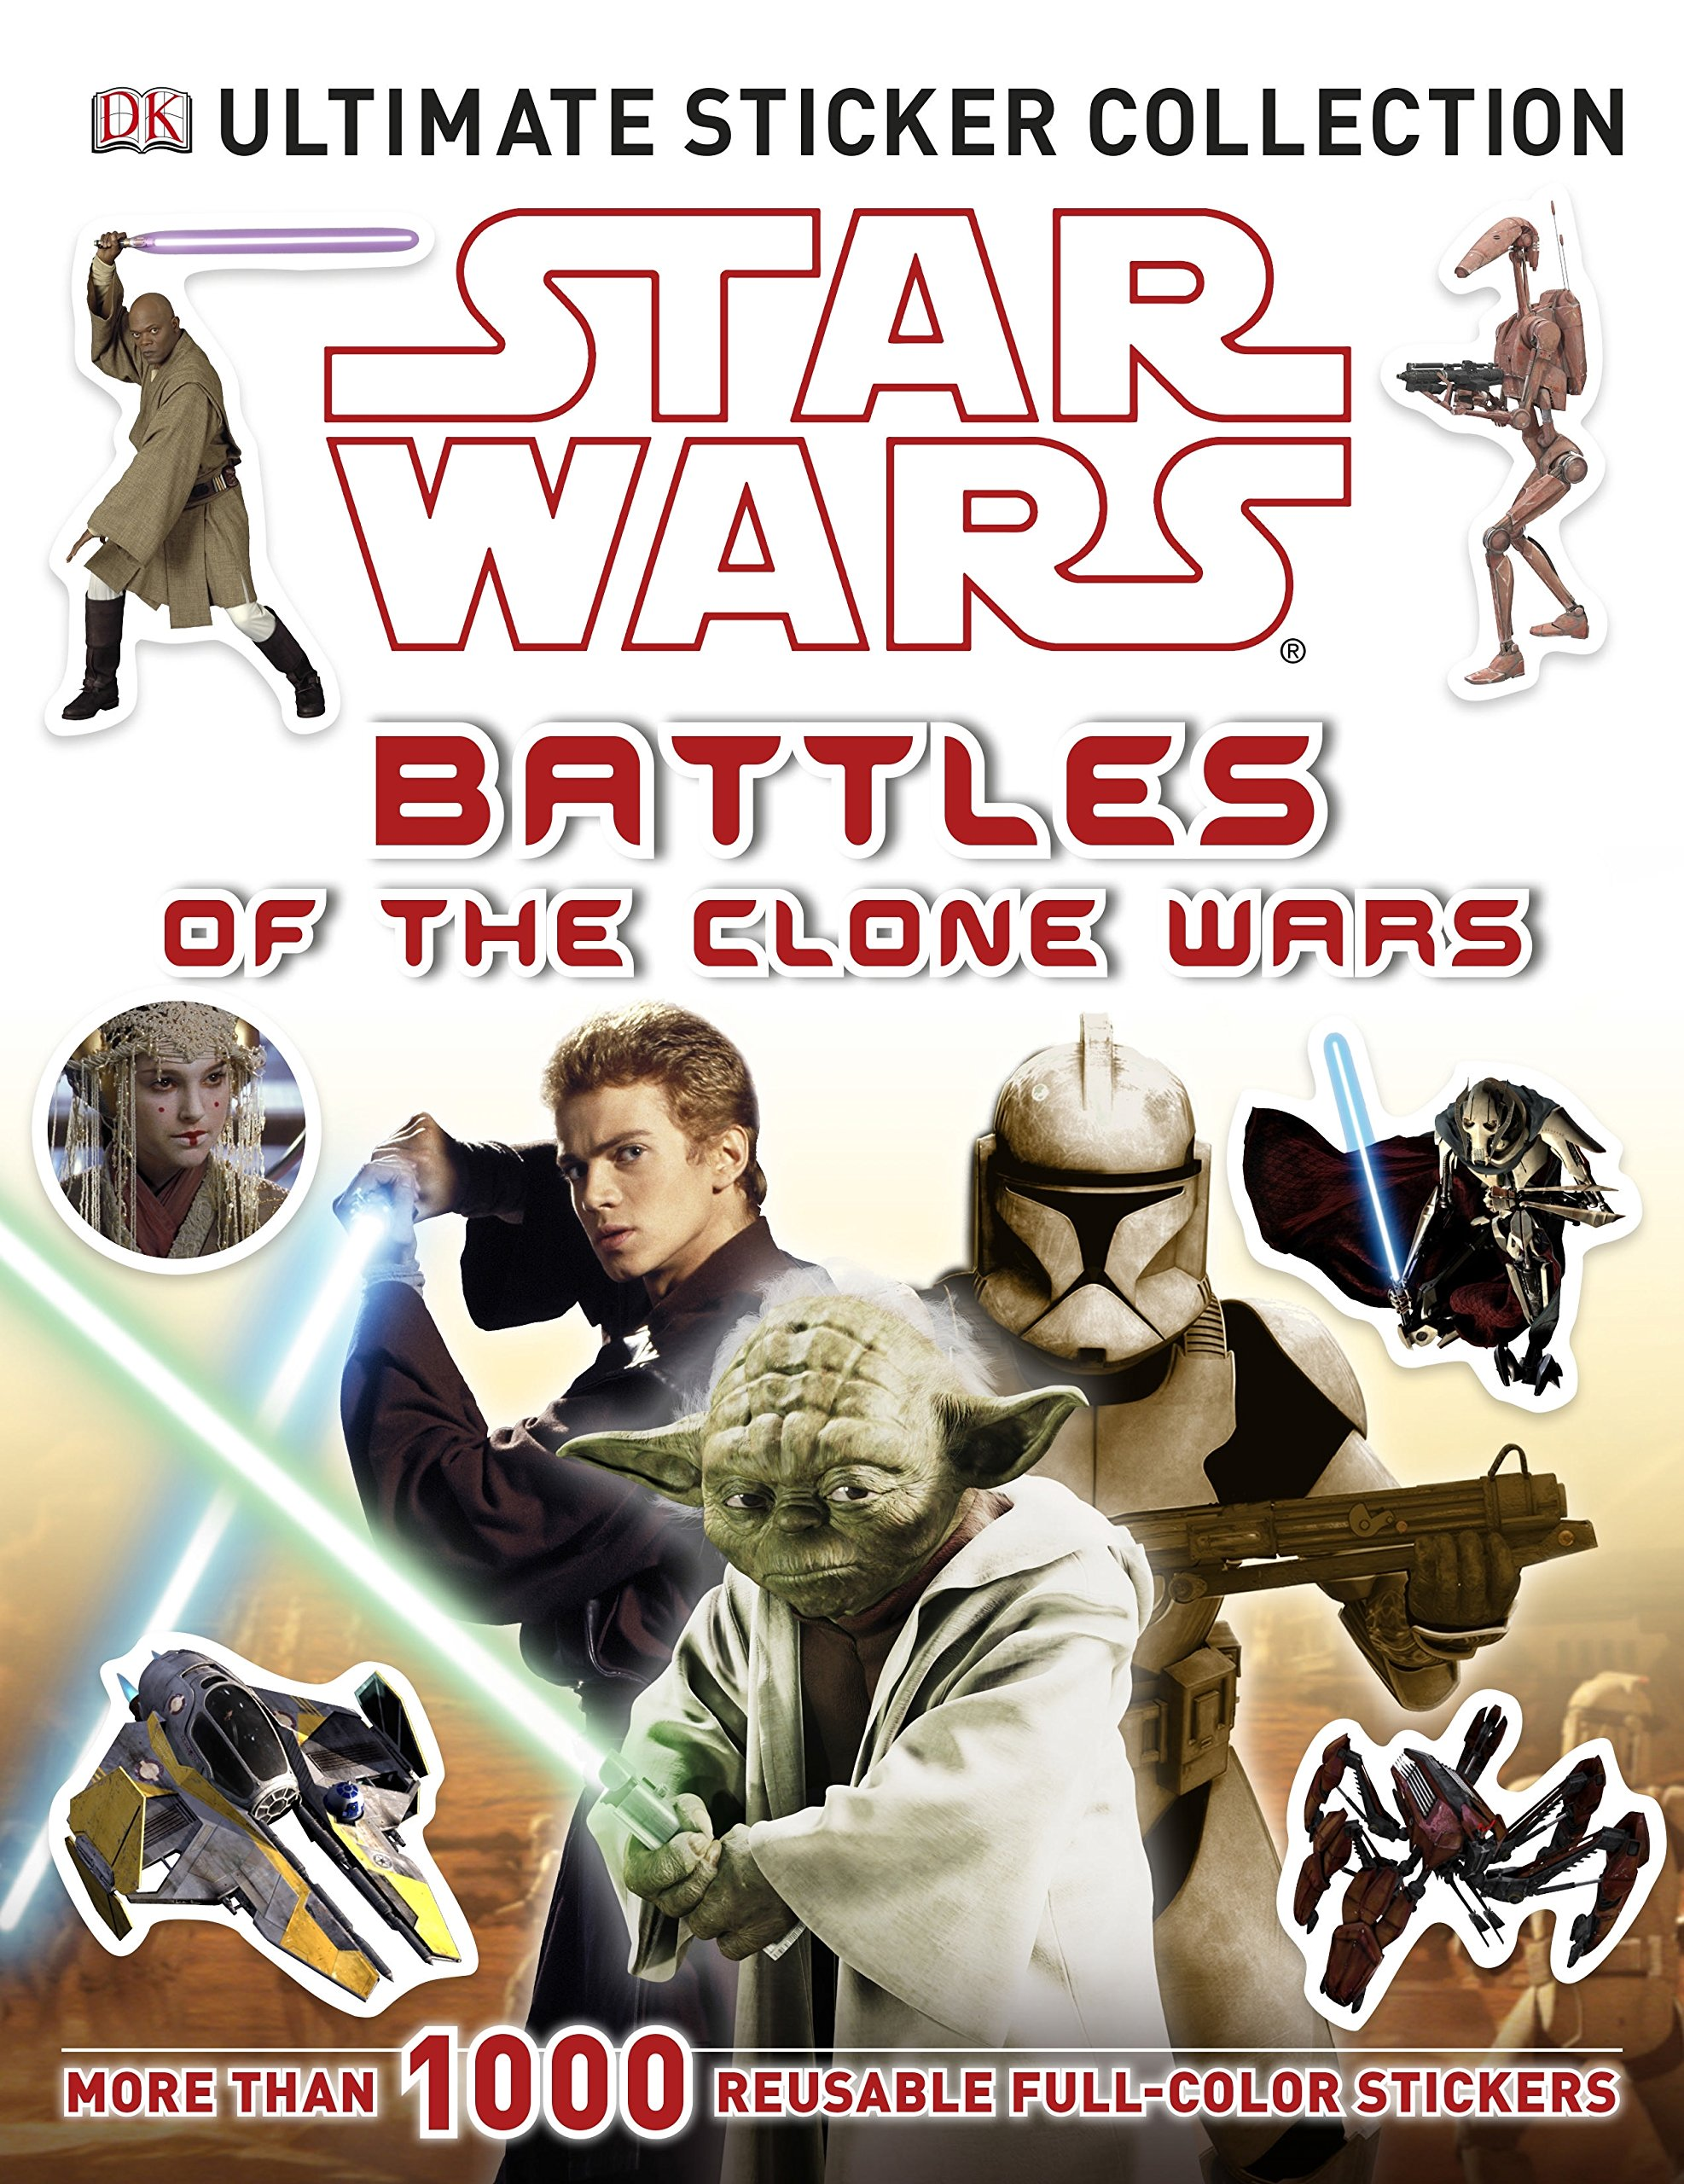 Star Wars: Battles of the Clone Wars Ultimate Sticker Collection